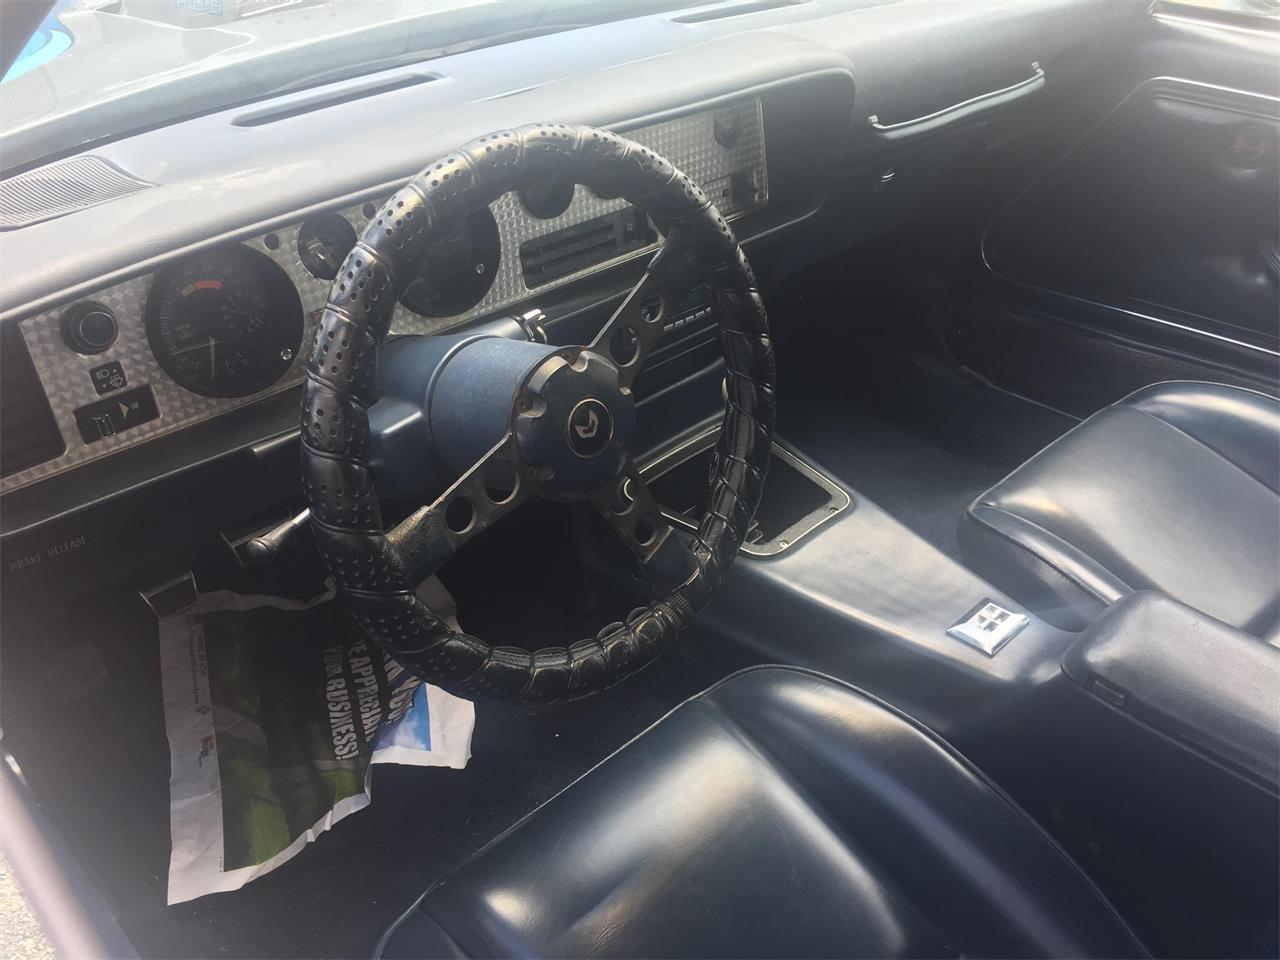 1981 Pontiac Firebird Trans Am for sale in Ponte Verda Beach, FL – photo 23